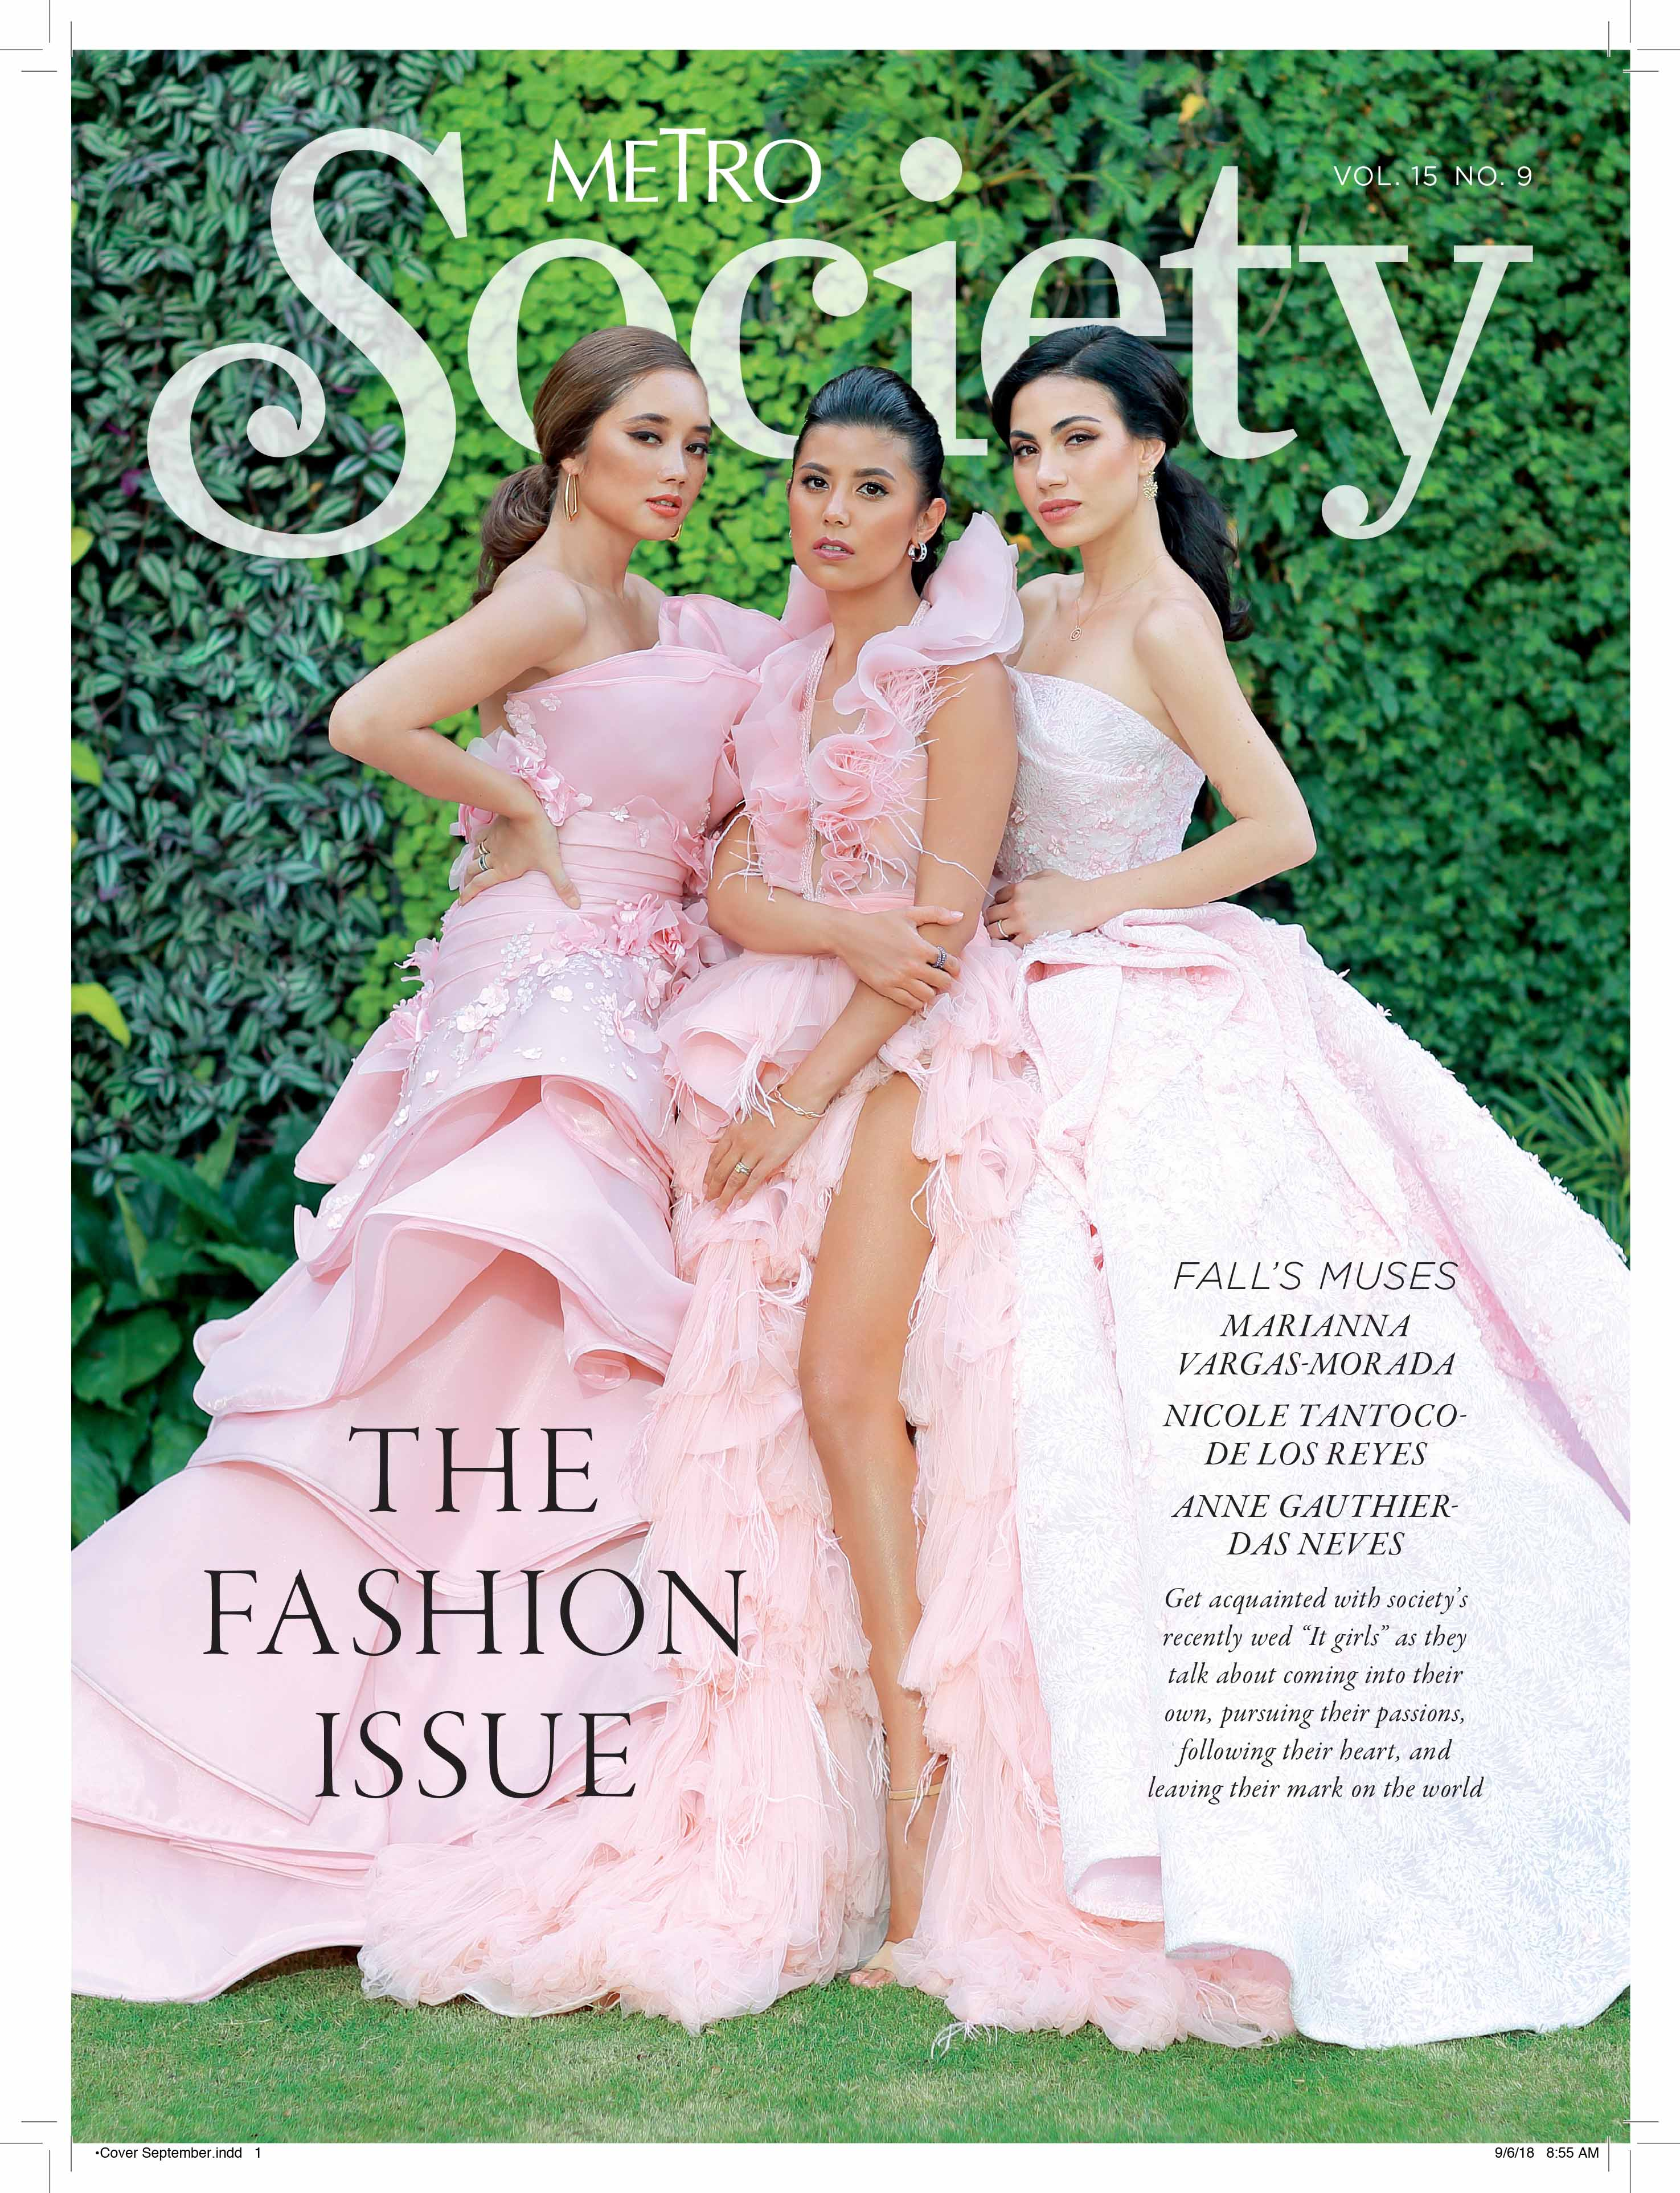 Recently wed 'it' girls grace cover of Metro Society's Fashion Issue